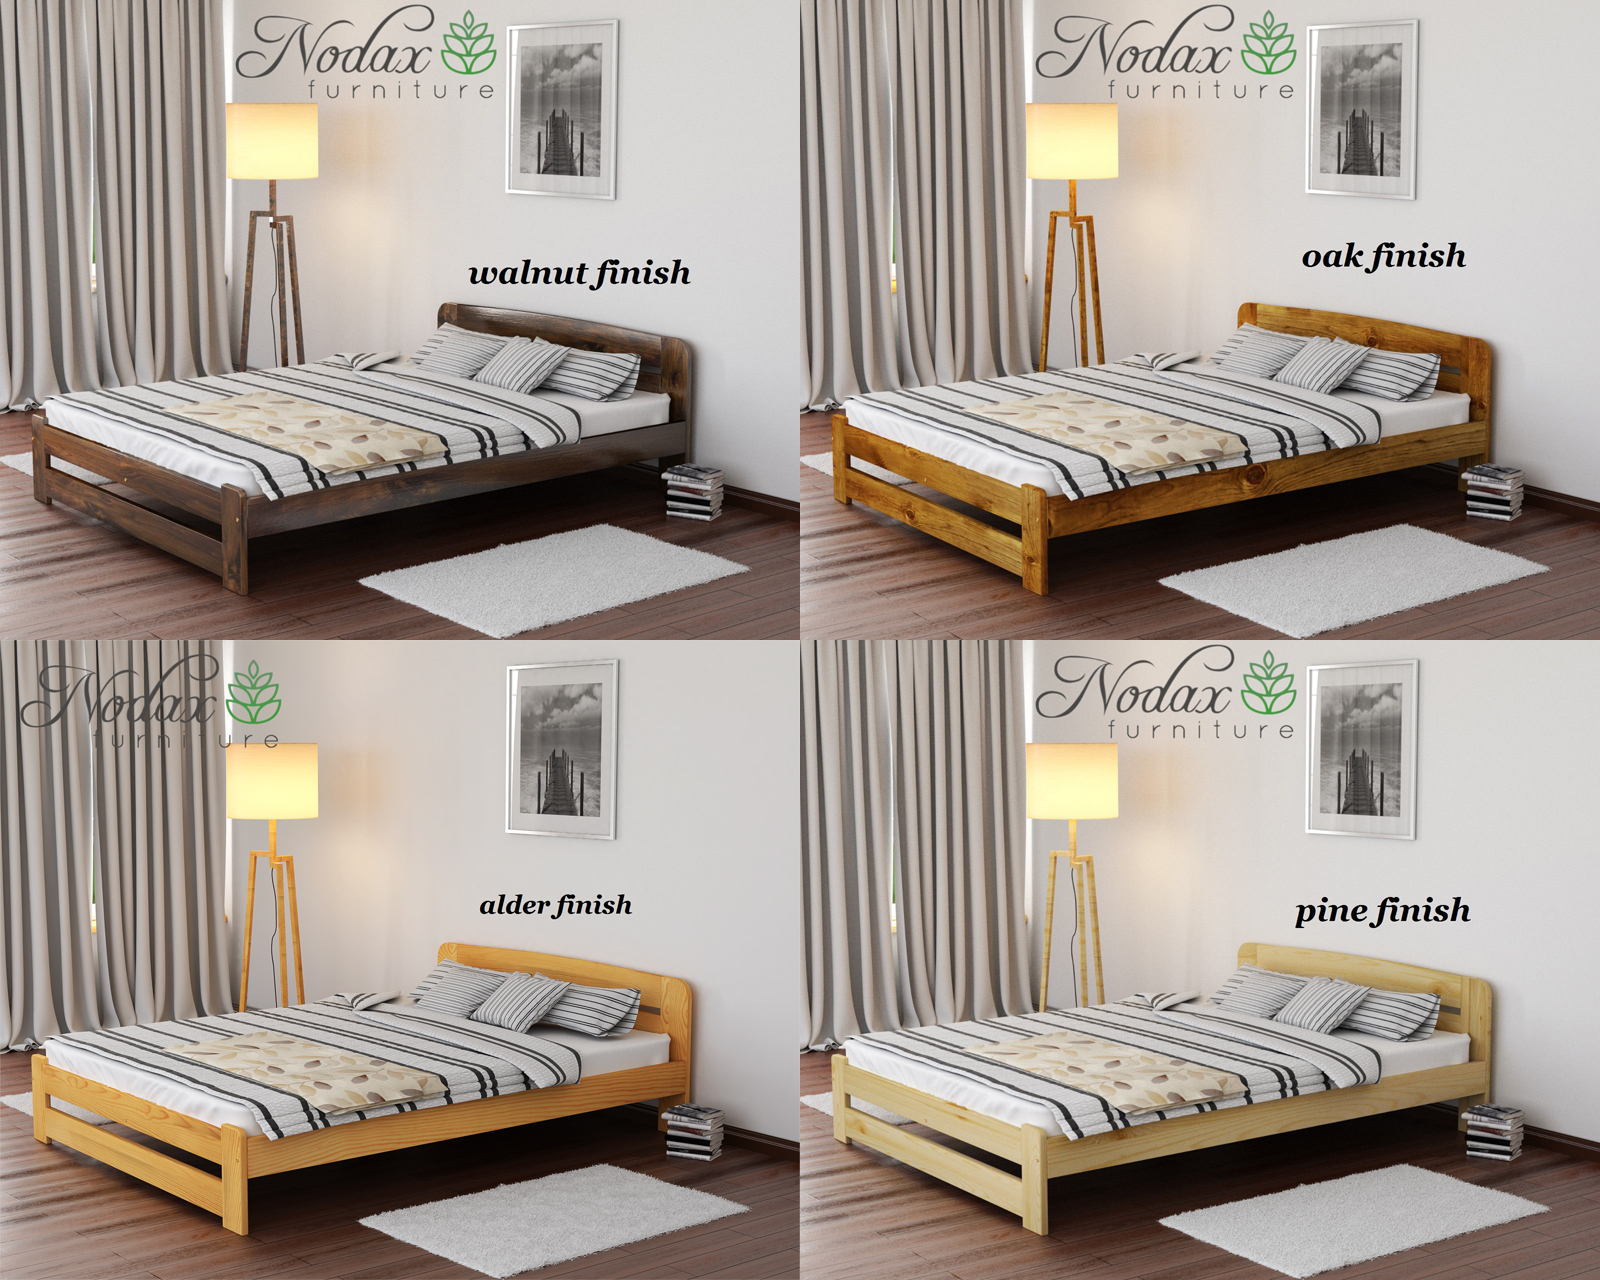 59566a53797 NODAX  New Wooden 100% Pine 6ft Super King Size Bed Frame